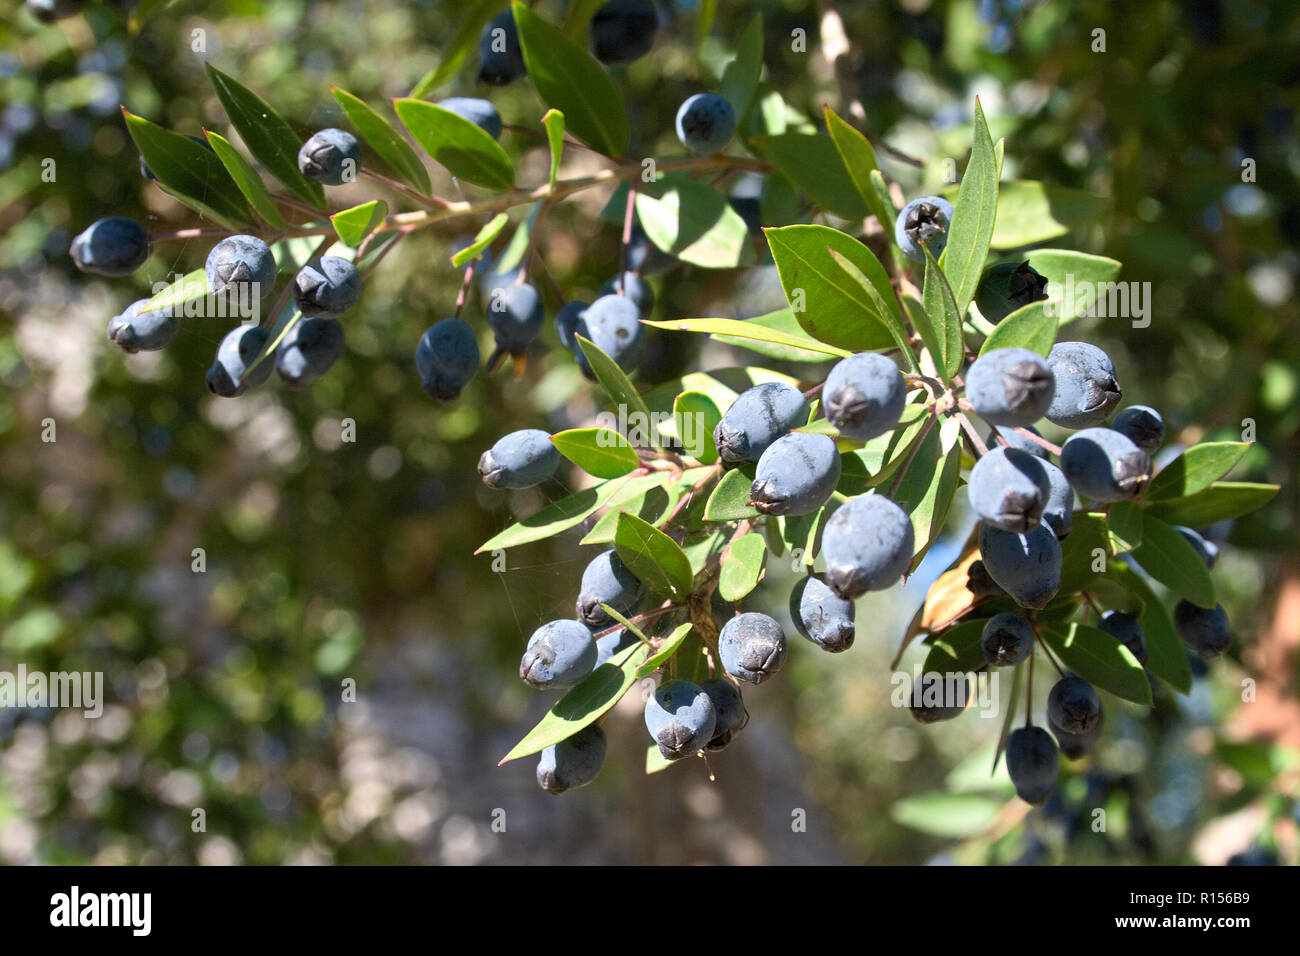 Myrtus communis with fruits, the Common myrtle, from the family Myrtaceae - a typical Mediterranean plant - Stock Image